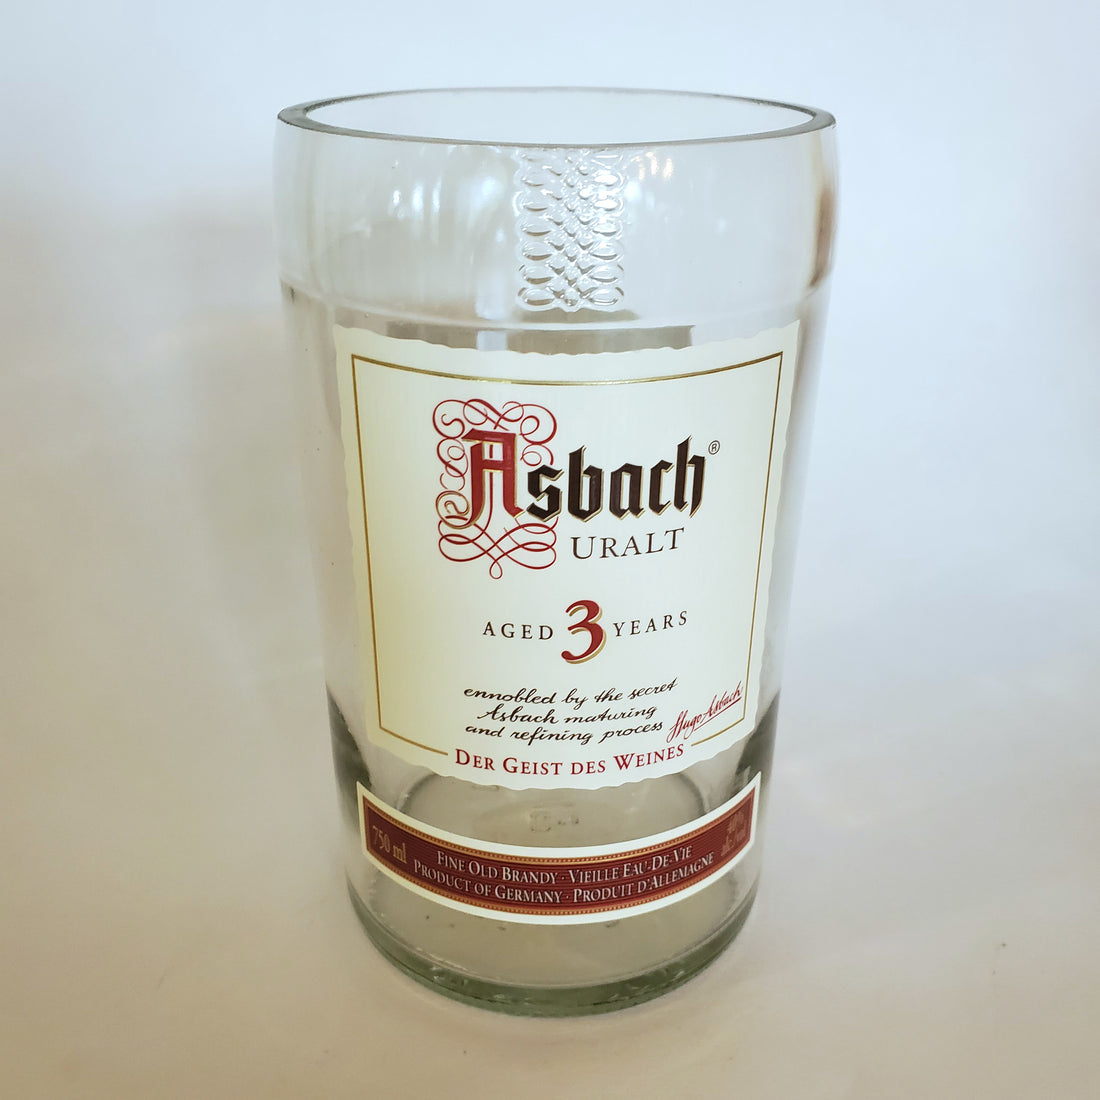 Asbach Uralt Brandy 750ml Hand Cut Upcycled Liquor Bottle Candle  - Choose Your Scent